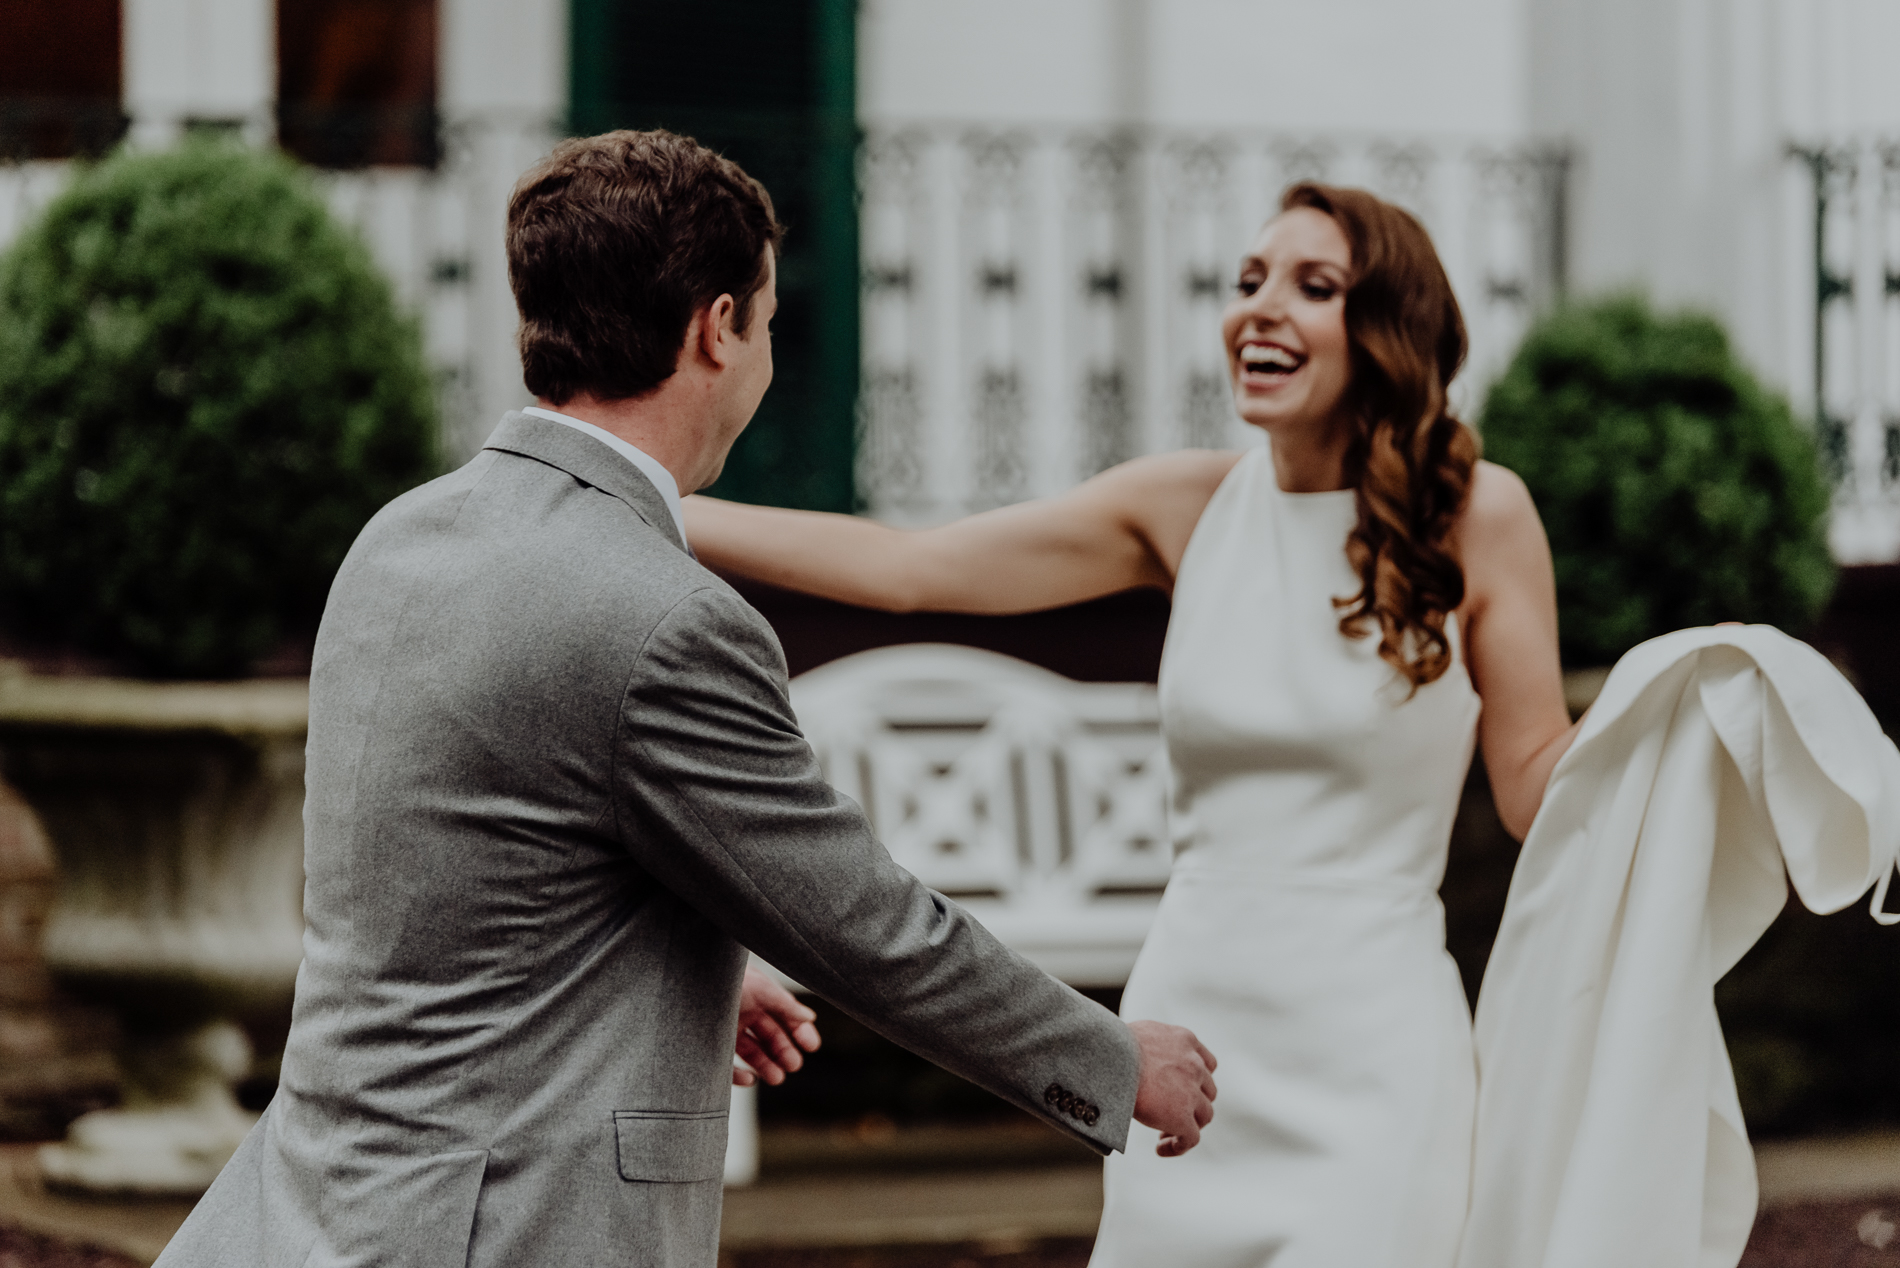 gabi and campbell east nashville wedding at riverwood mansion by wilde company-13.jpg